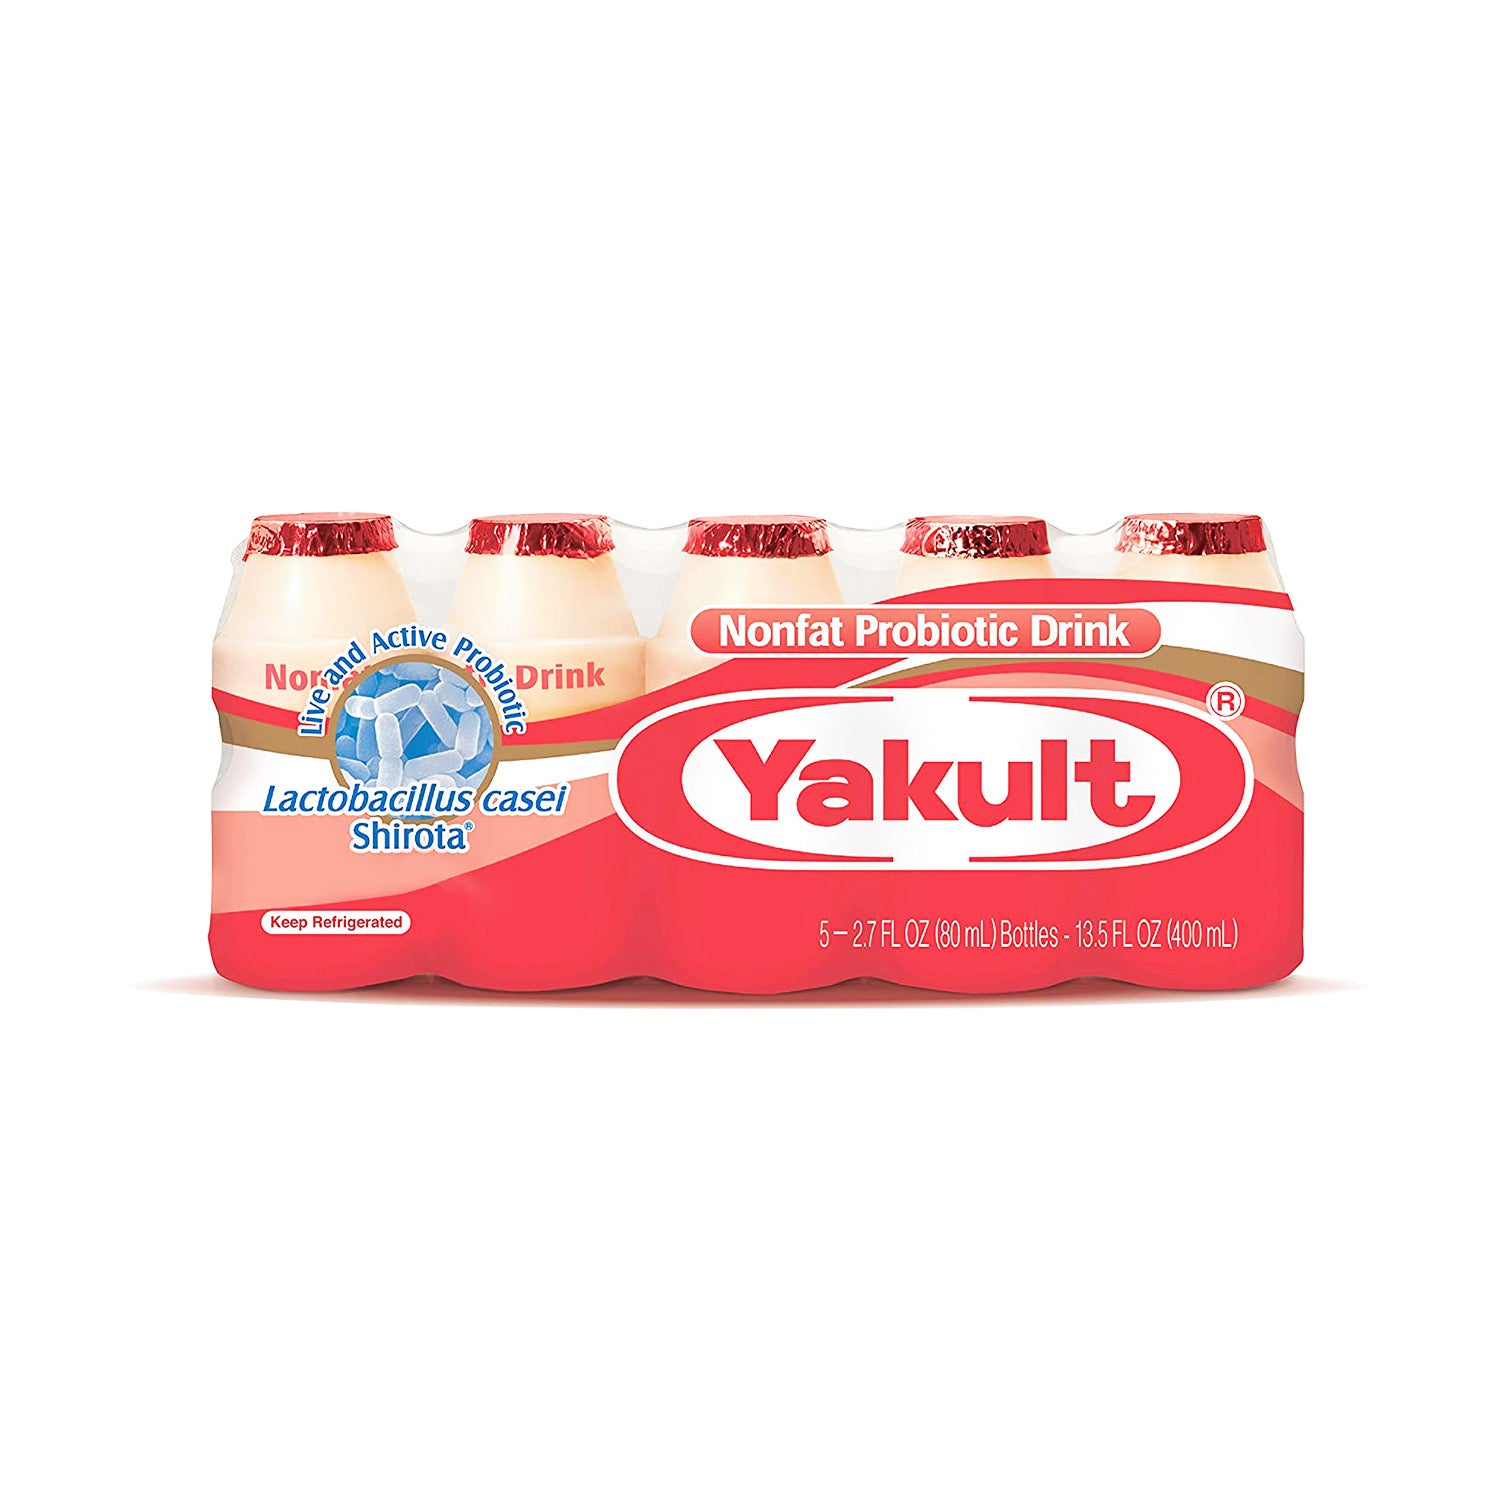 Yakult Nonfat Probiotic Drink